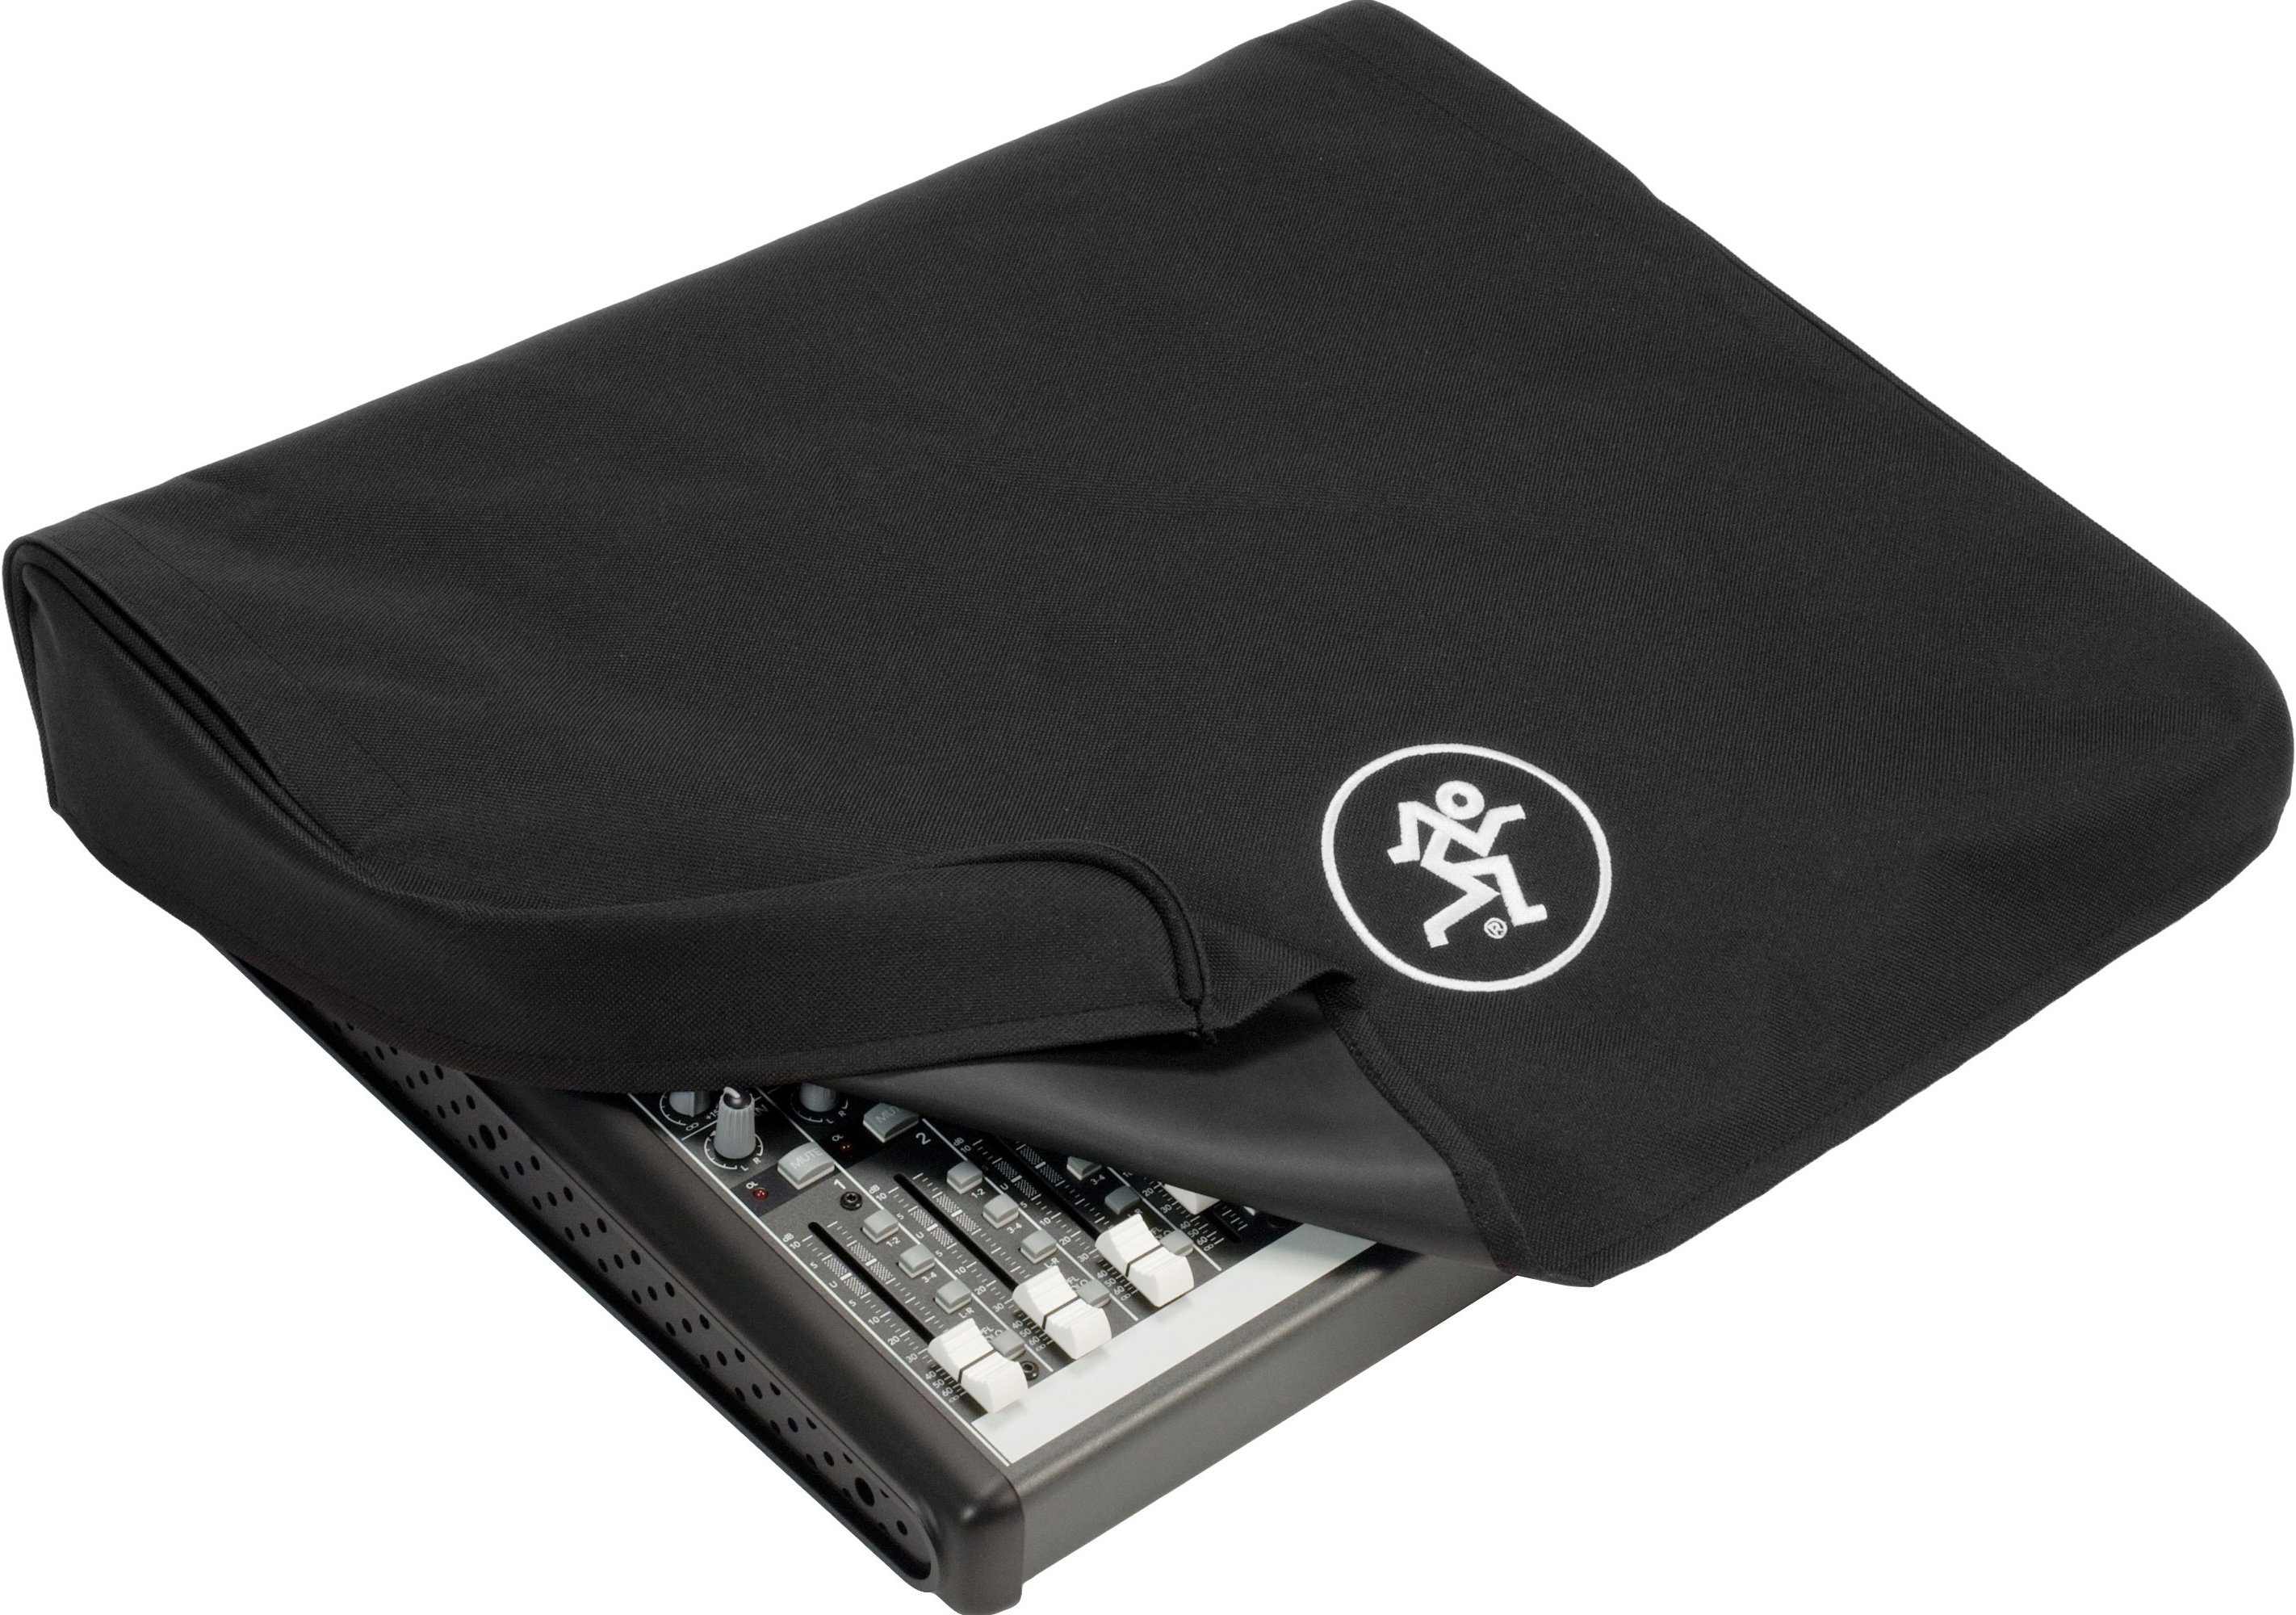 Dust Cover for ProFX16 Effects Mixer